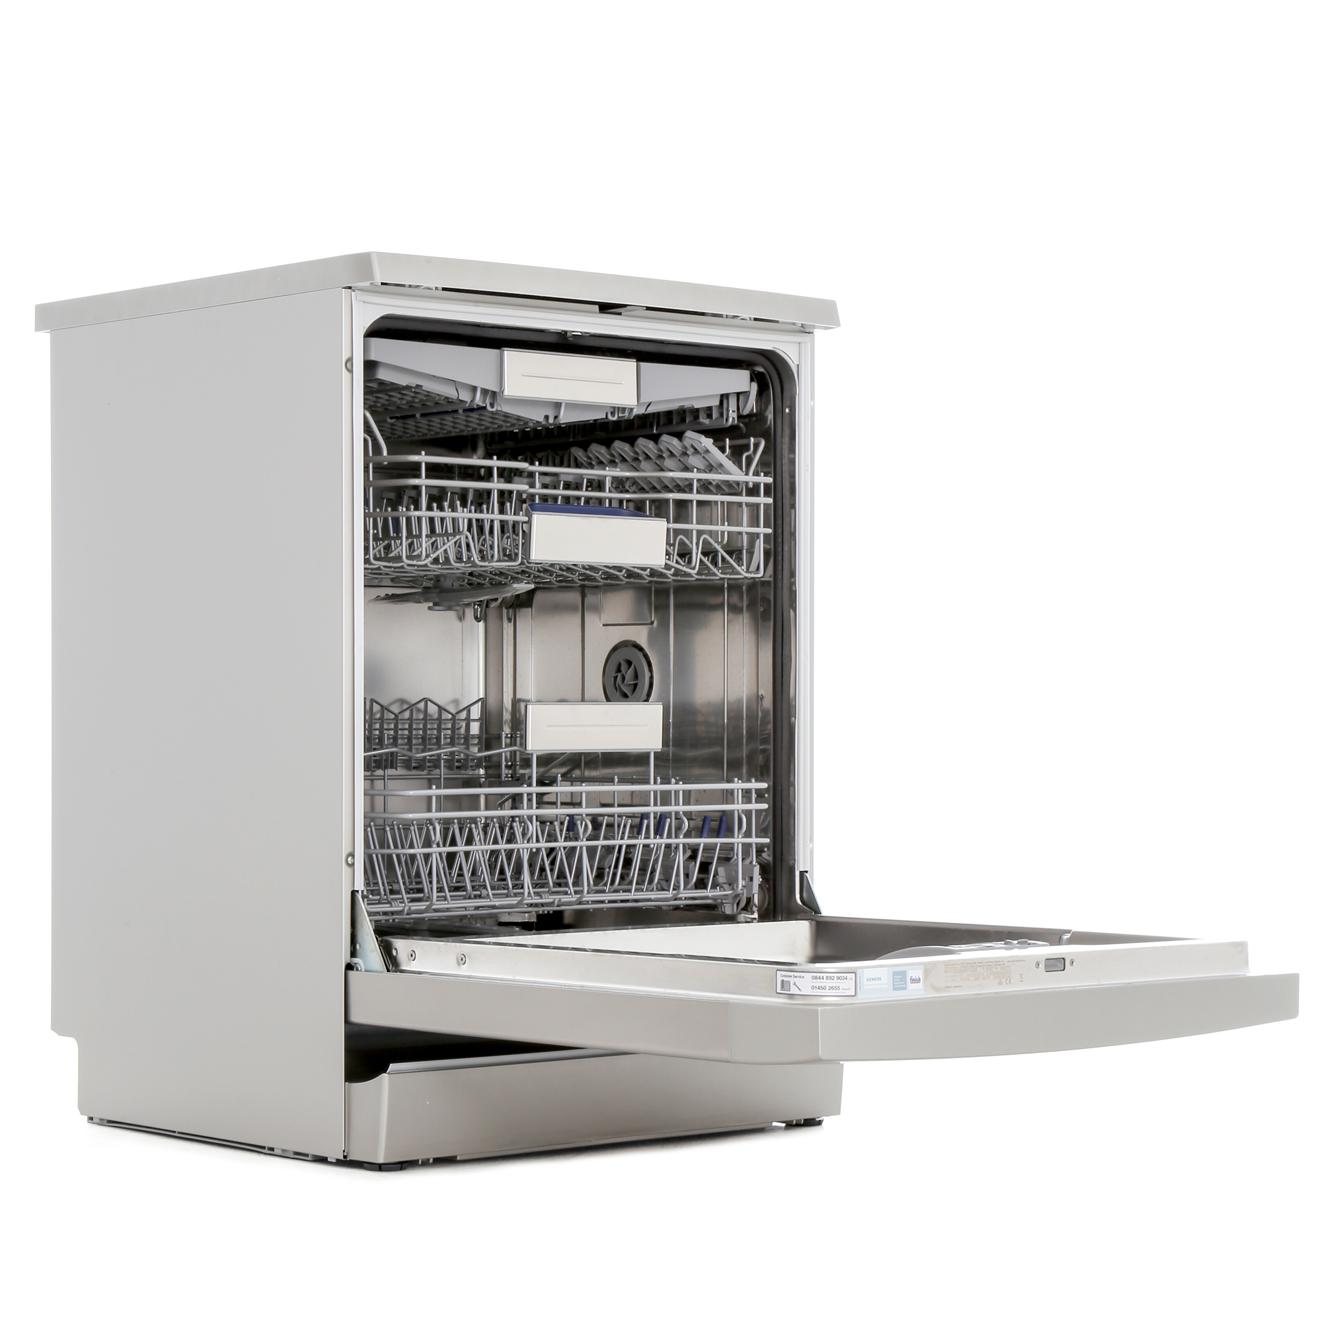 siemens dishwasher how to use